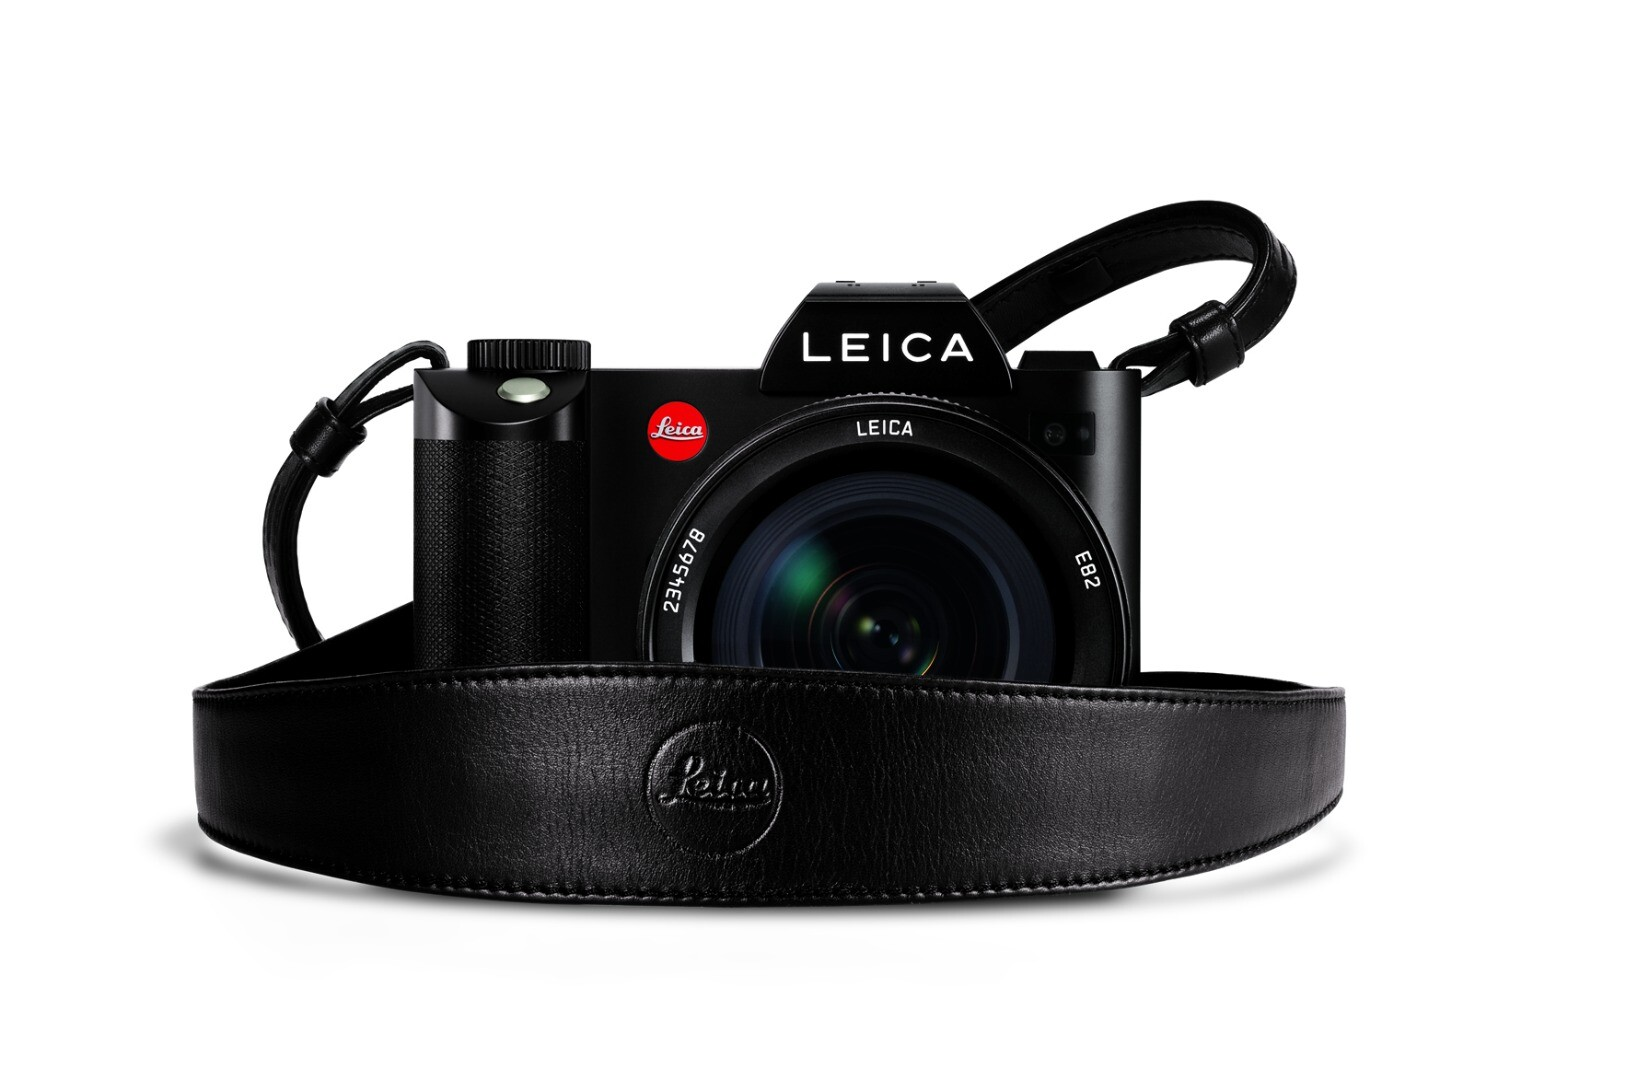 Leica SL - at US$11500 for a body and lens kit, this is aimed well into the premium segment.